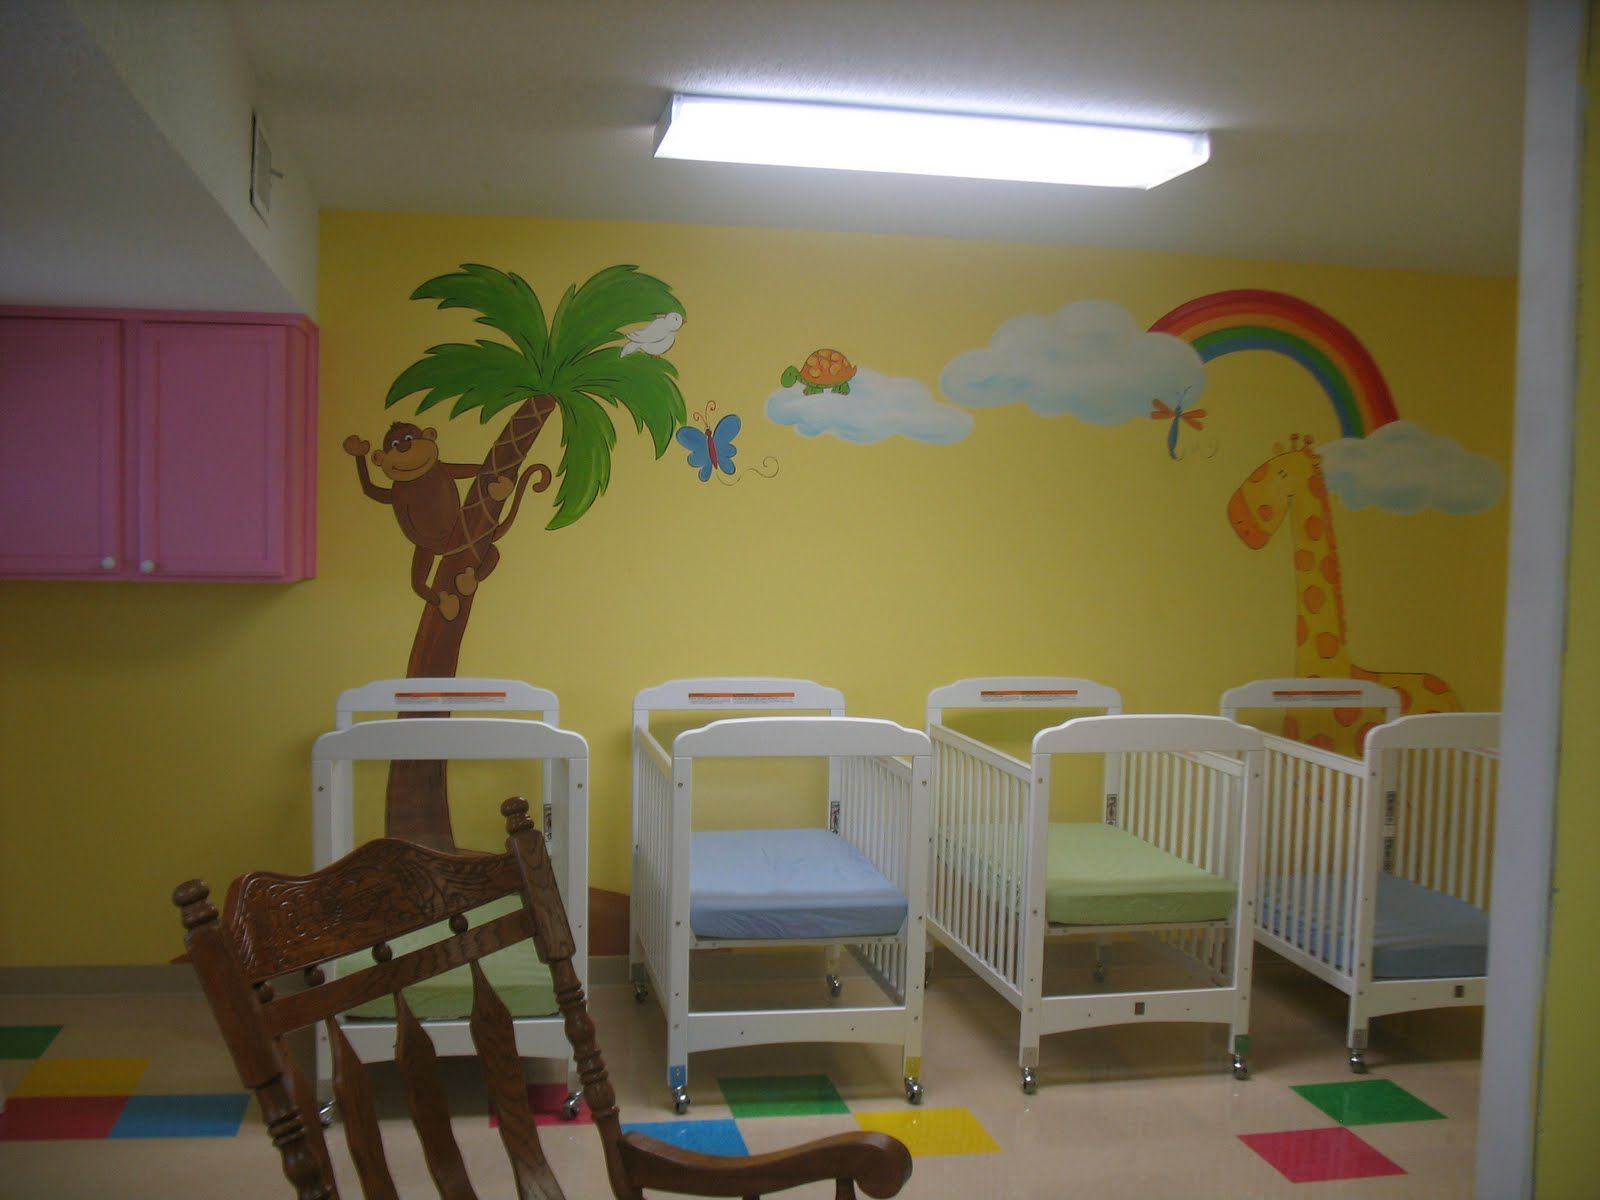 church nursery ideas decor | ... .blogspot.com/2011/10/church ...